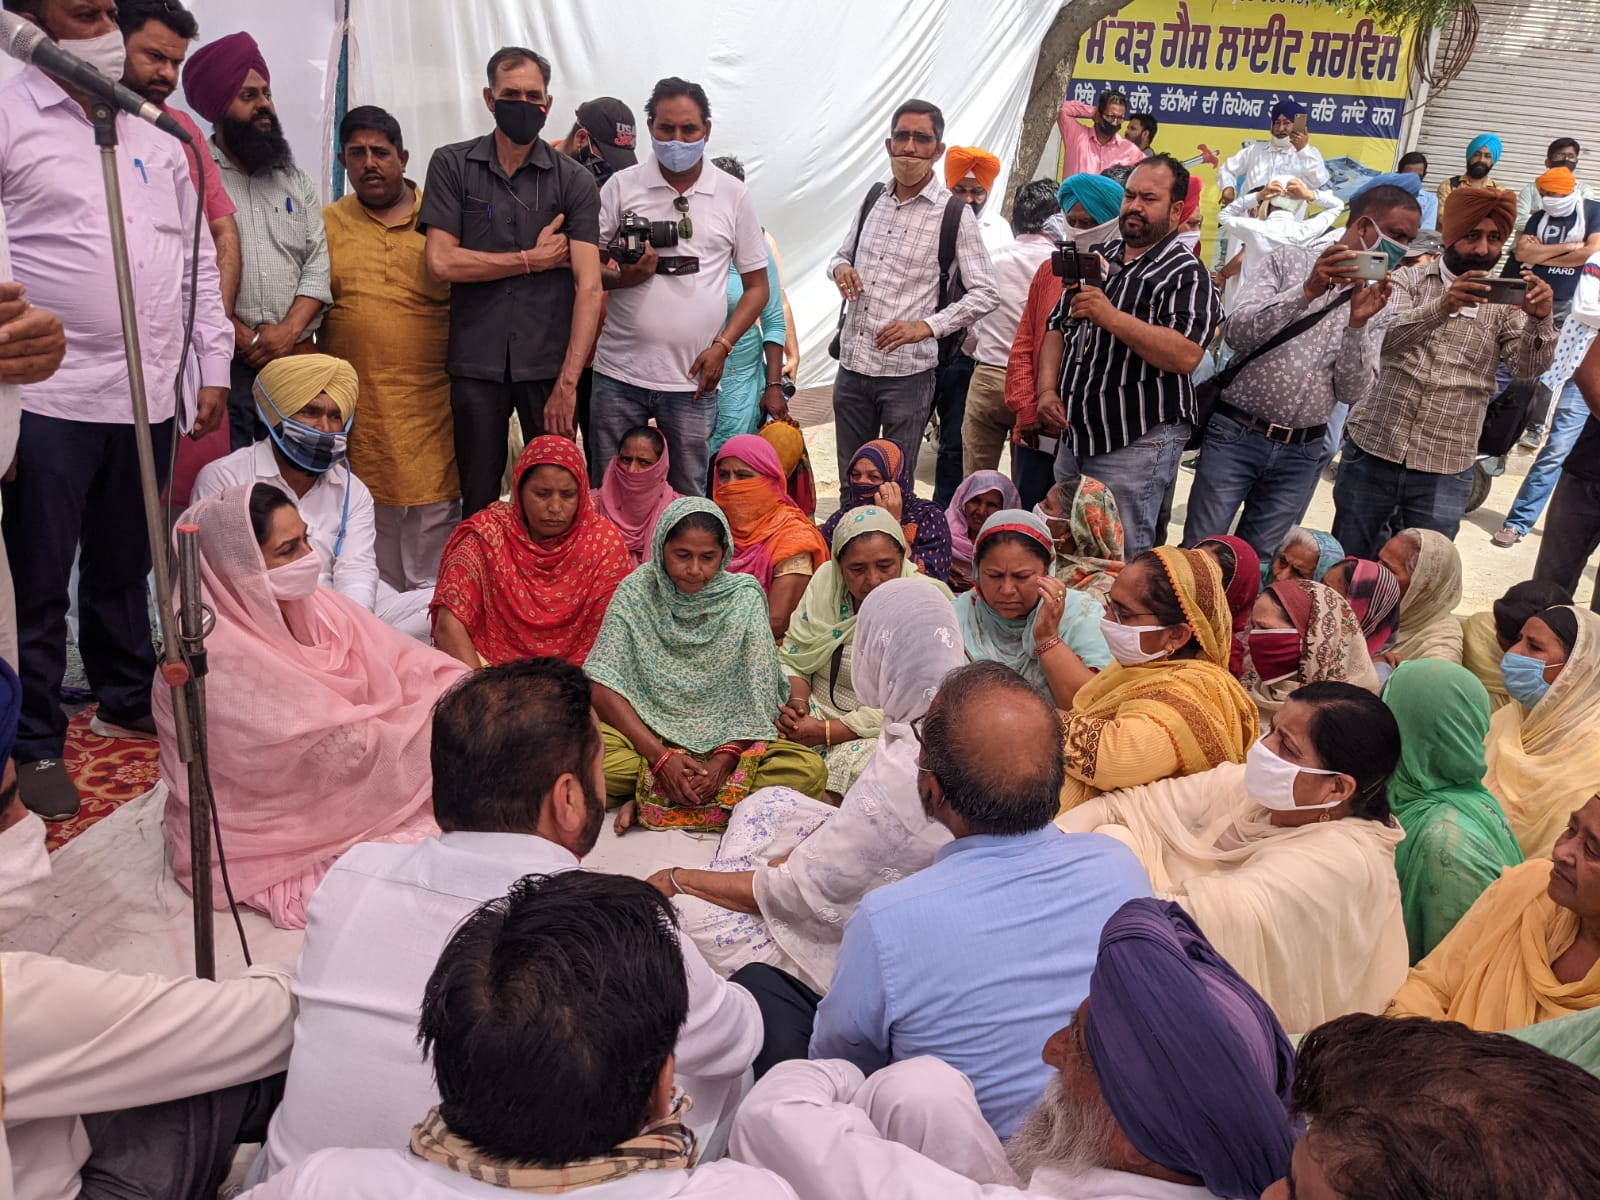 Shiromani Akali Dal (SAD) held protest dharnas in all constituencies to protest against fixed match being played by Captain Amarinder Singh with Centre.